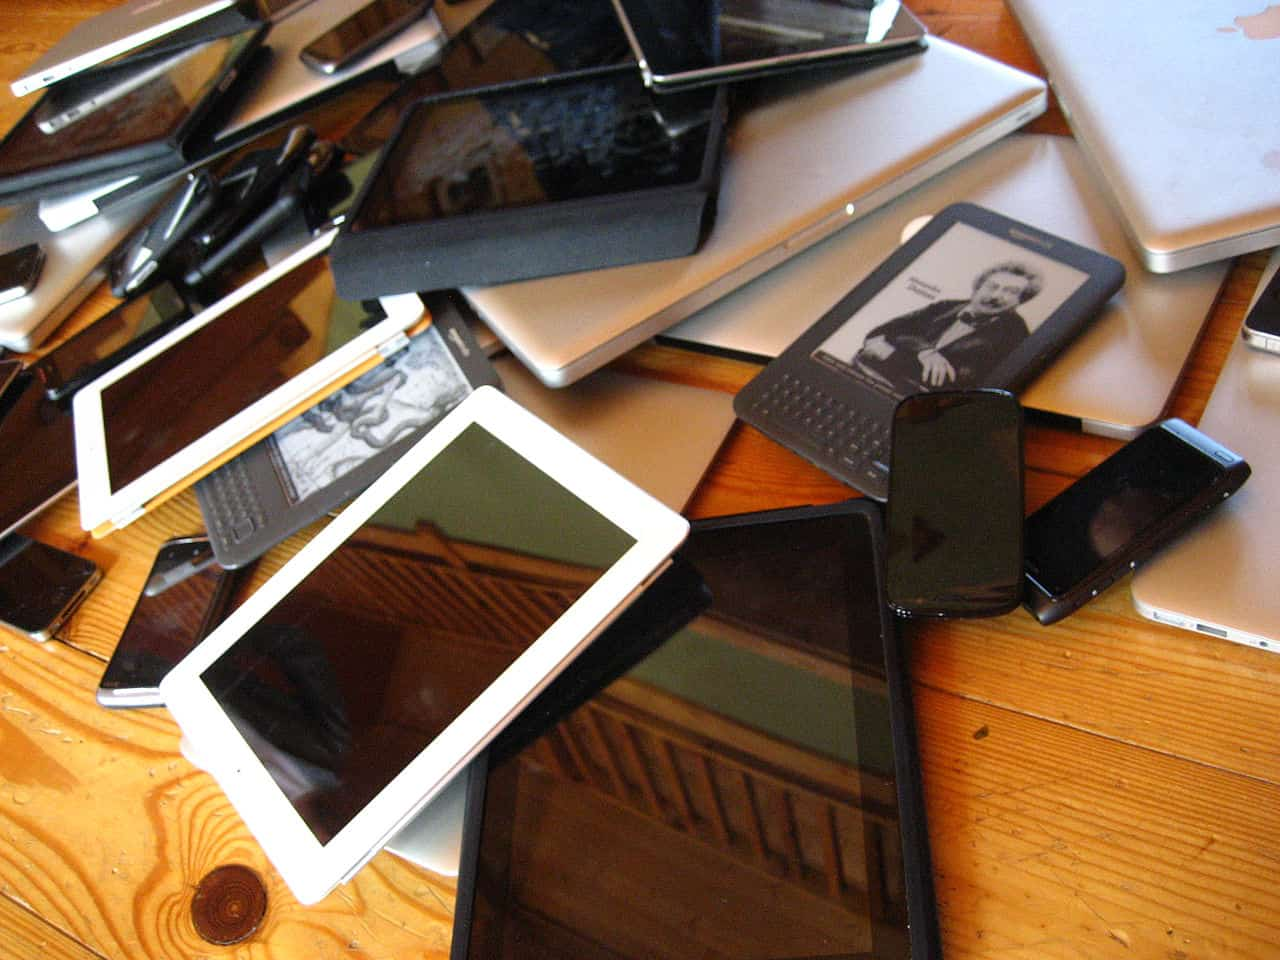 A pile of mobile devices including smart phones, tablets, laptops and ebook readers.